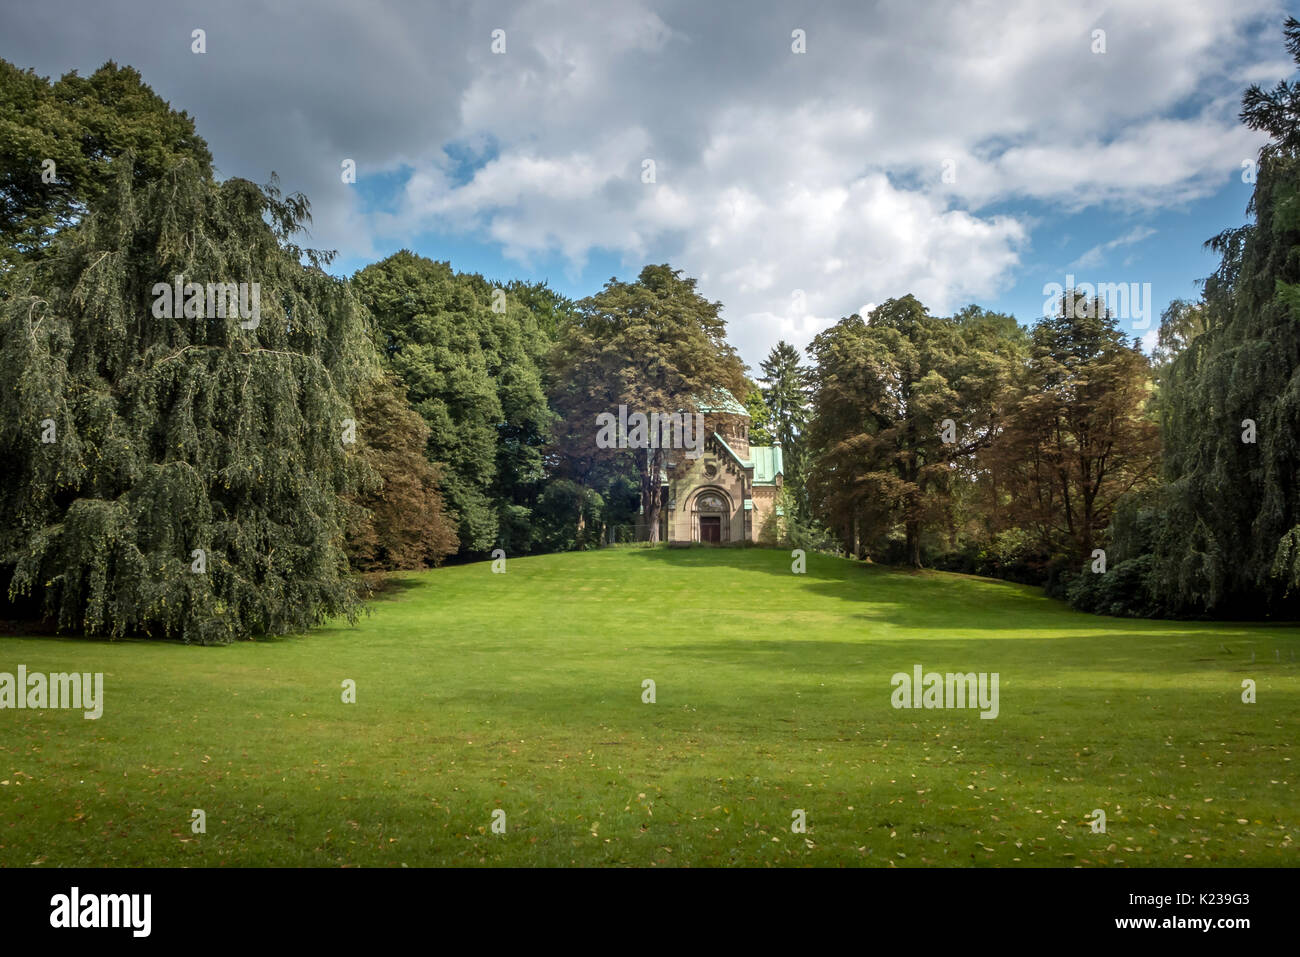 Ohlsdorf Cemetery in Hamburg, Germany Stock Photo